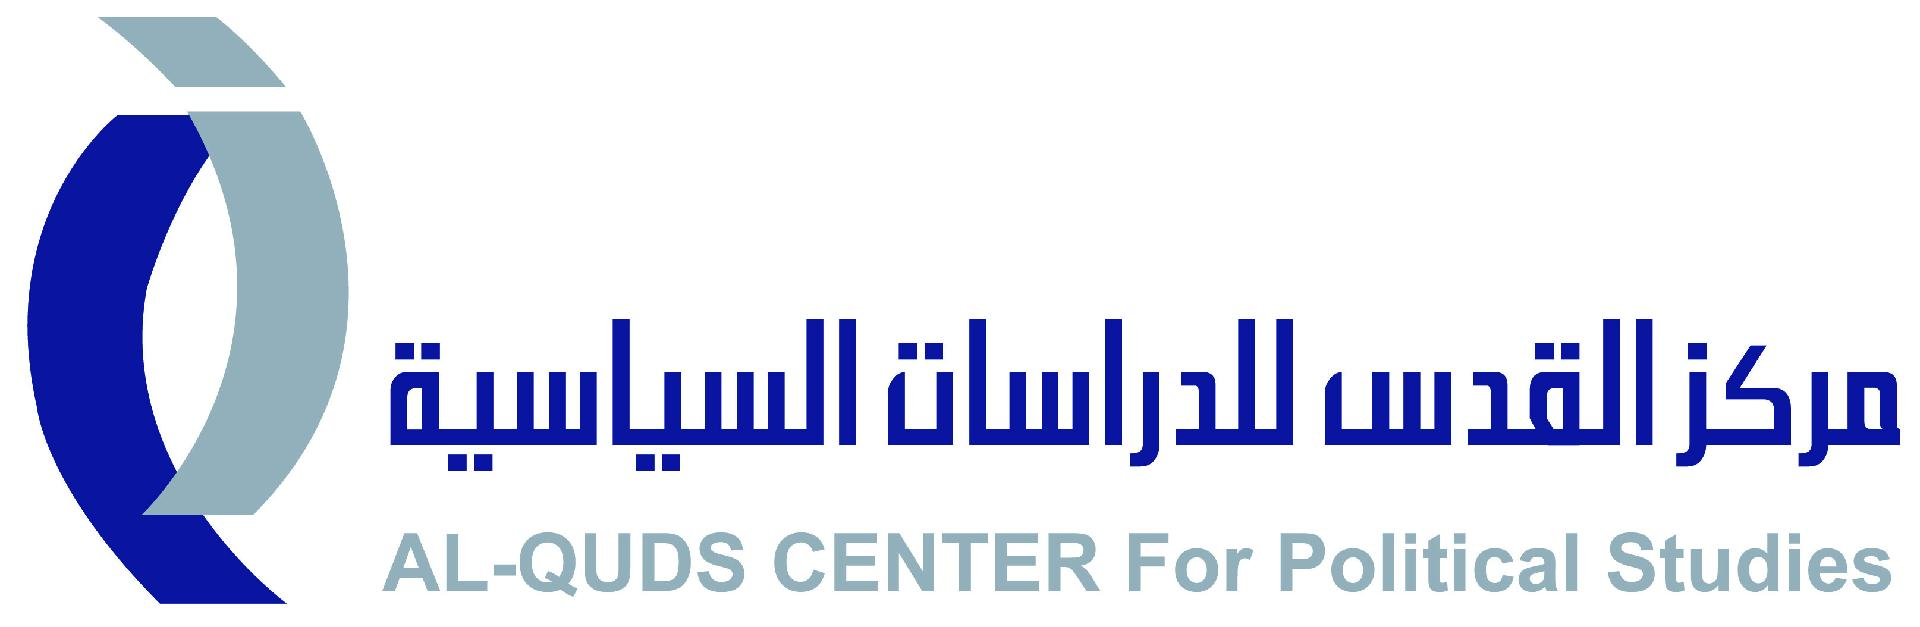 Al-Quds Center for Political Studies